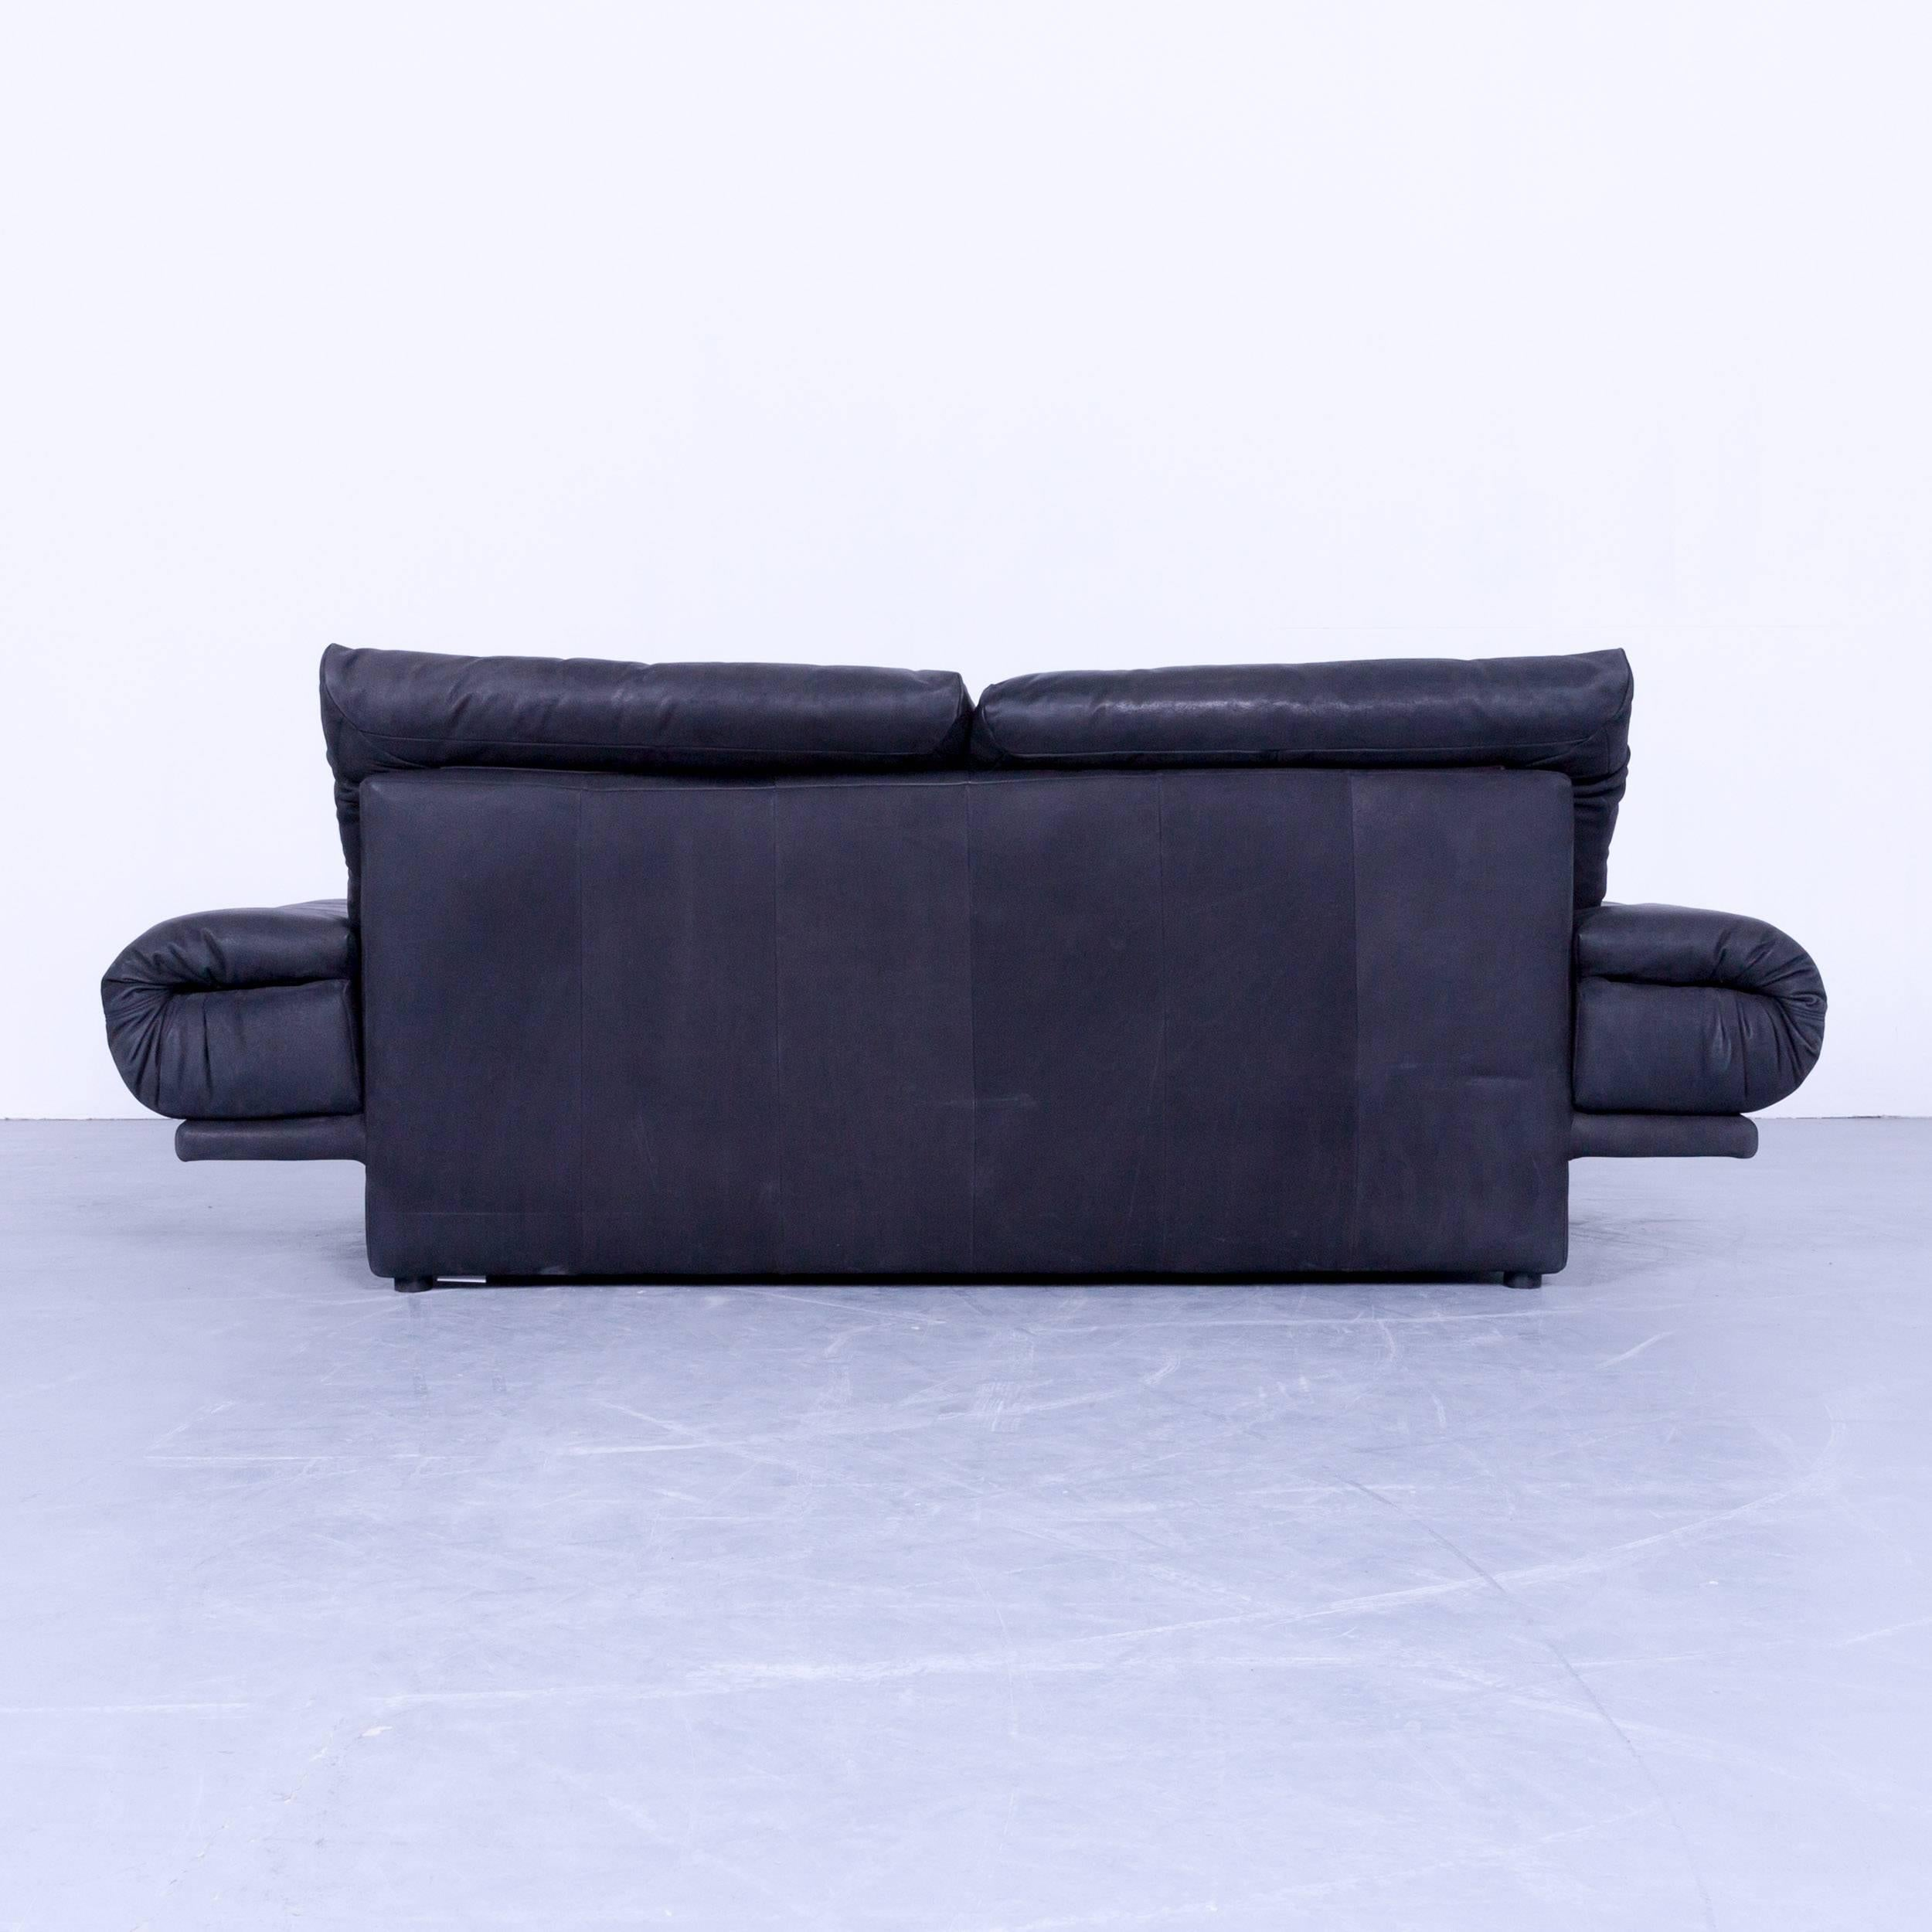 Rolf Benz Sofa 345 Rolf Benz 345 Designer Sofa Leather Black Three Seat Couch Modern Vintage Retro